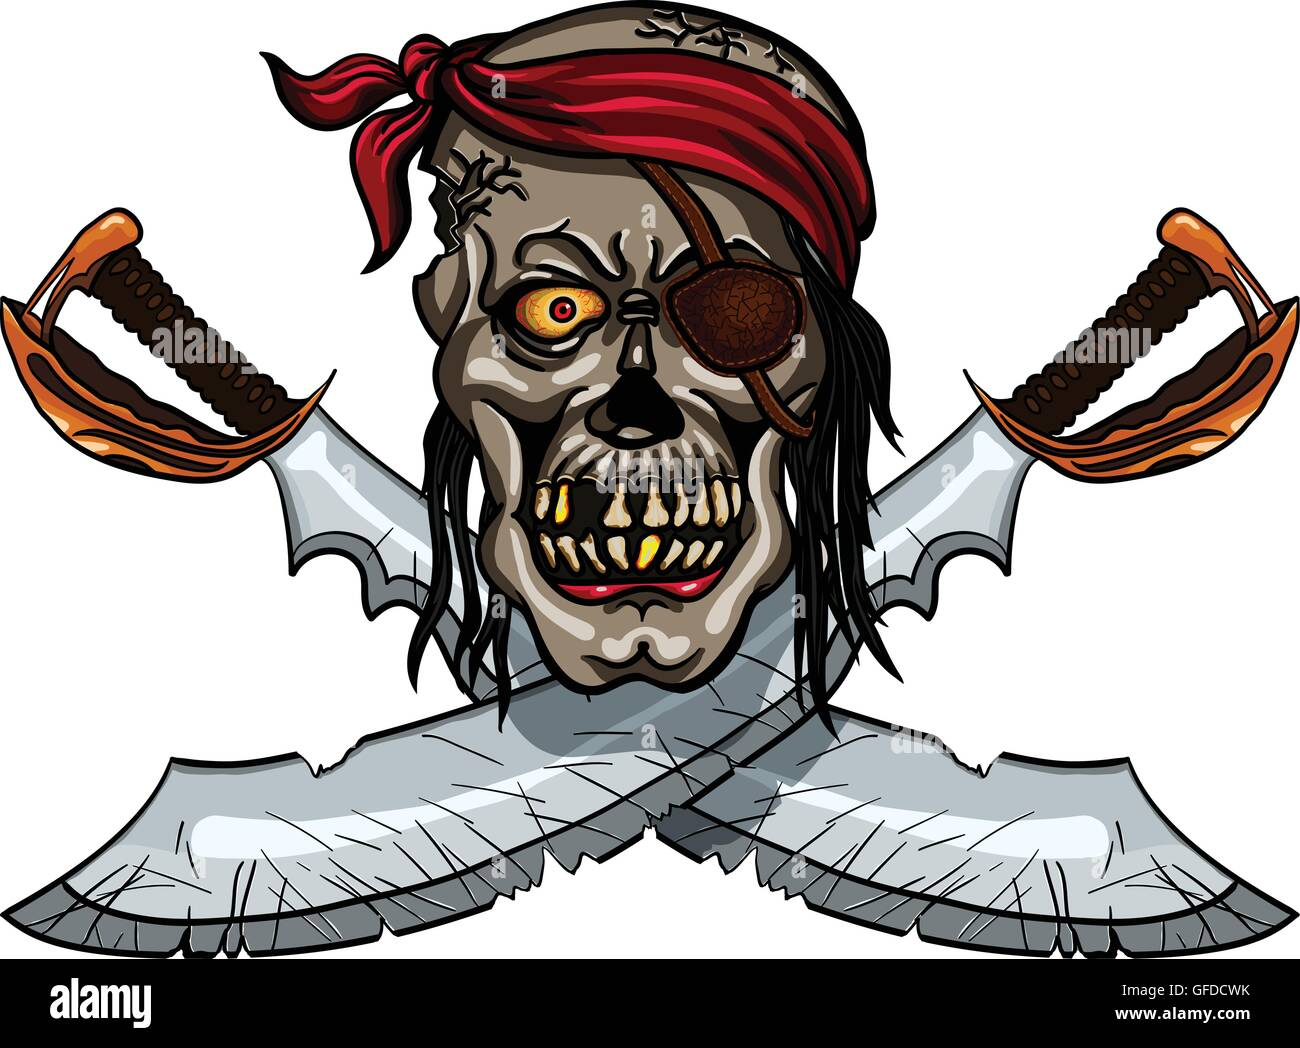 danger pirate skull in bandanna and crossed swords for tattoo or